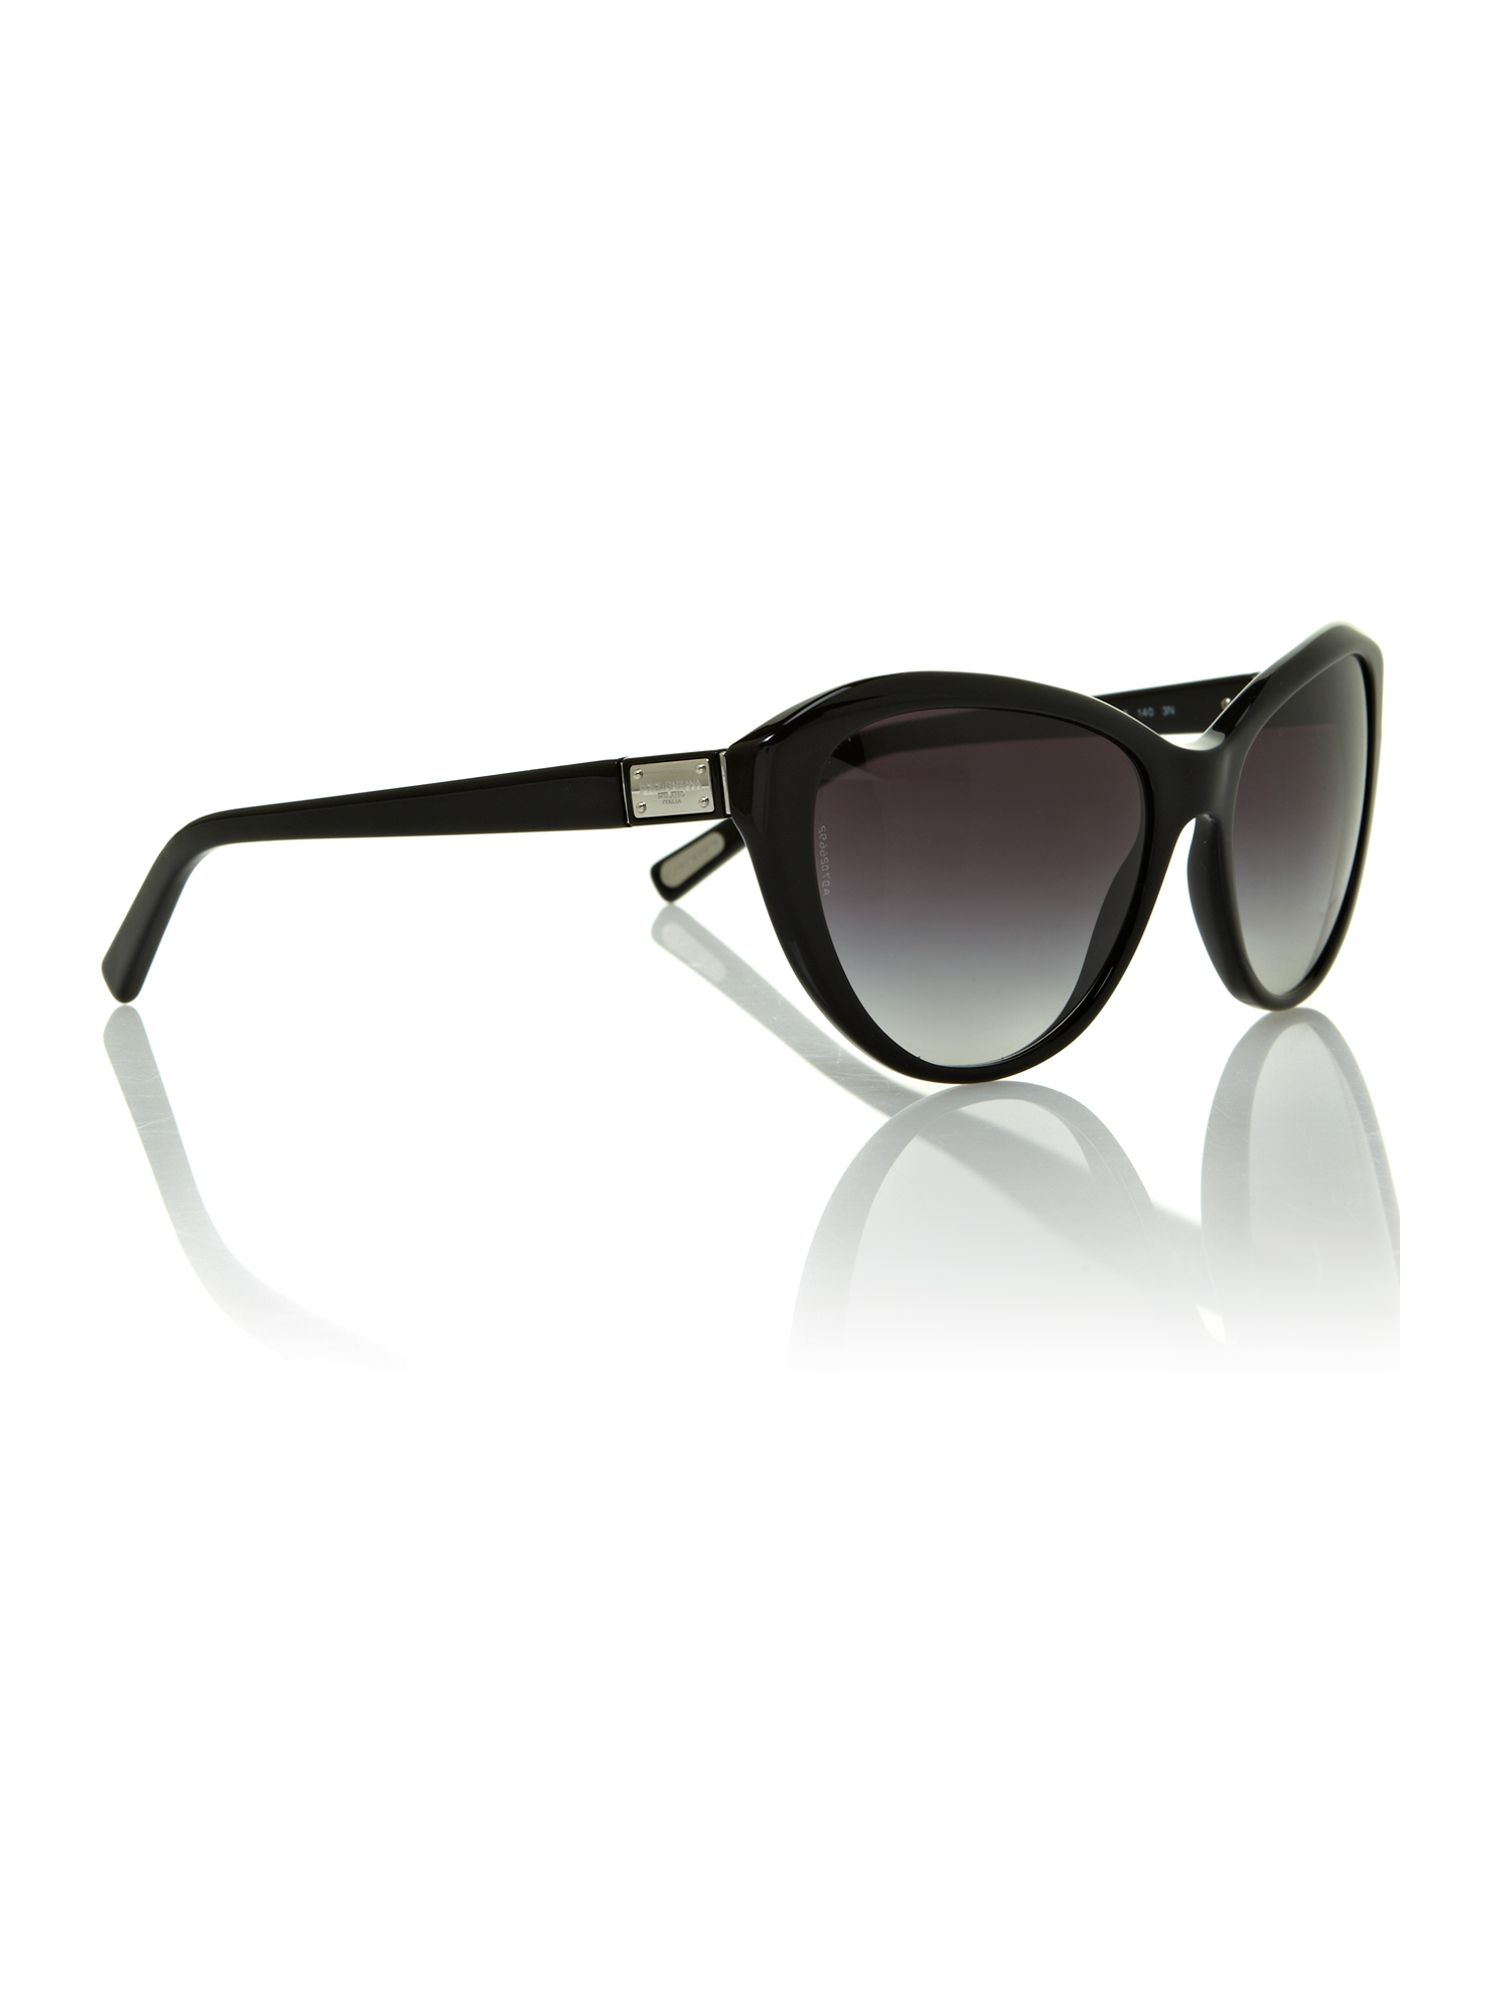 Ladies DG4141 Logo Shiny Black Sunglasses